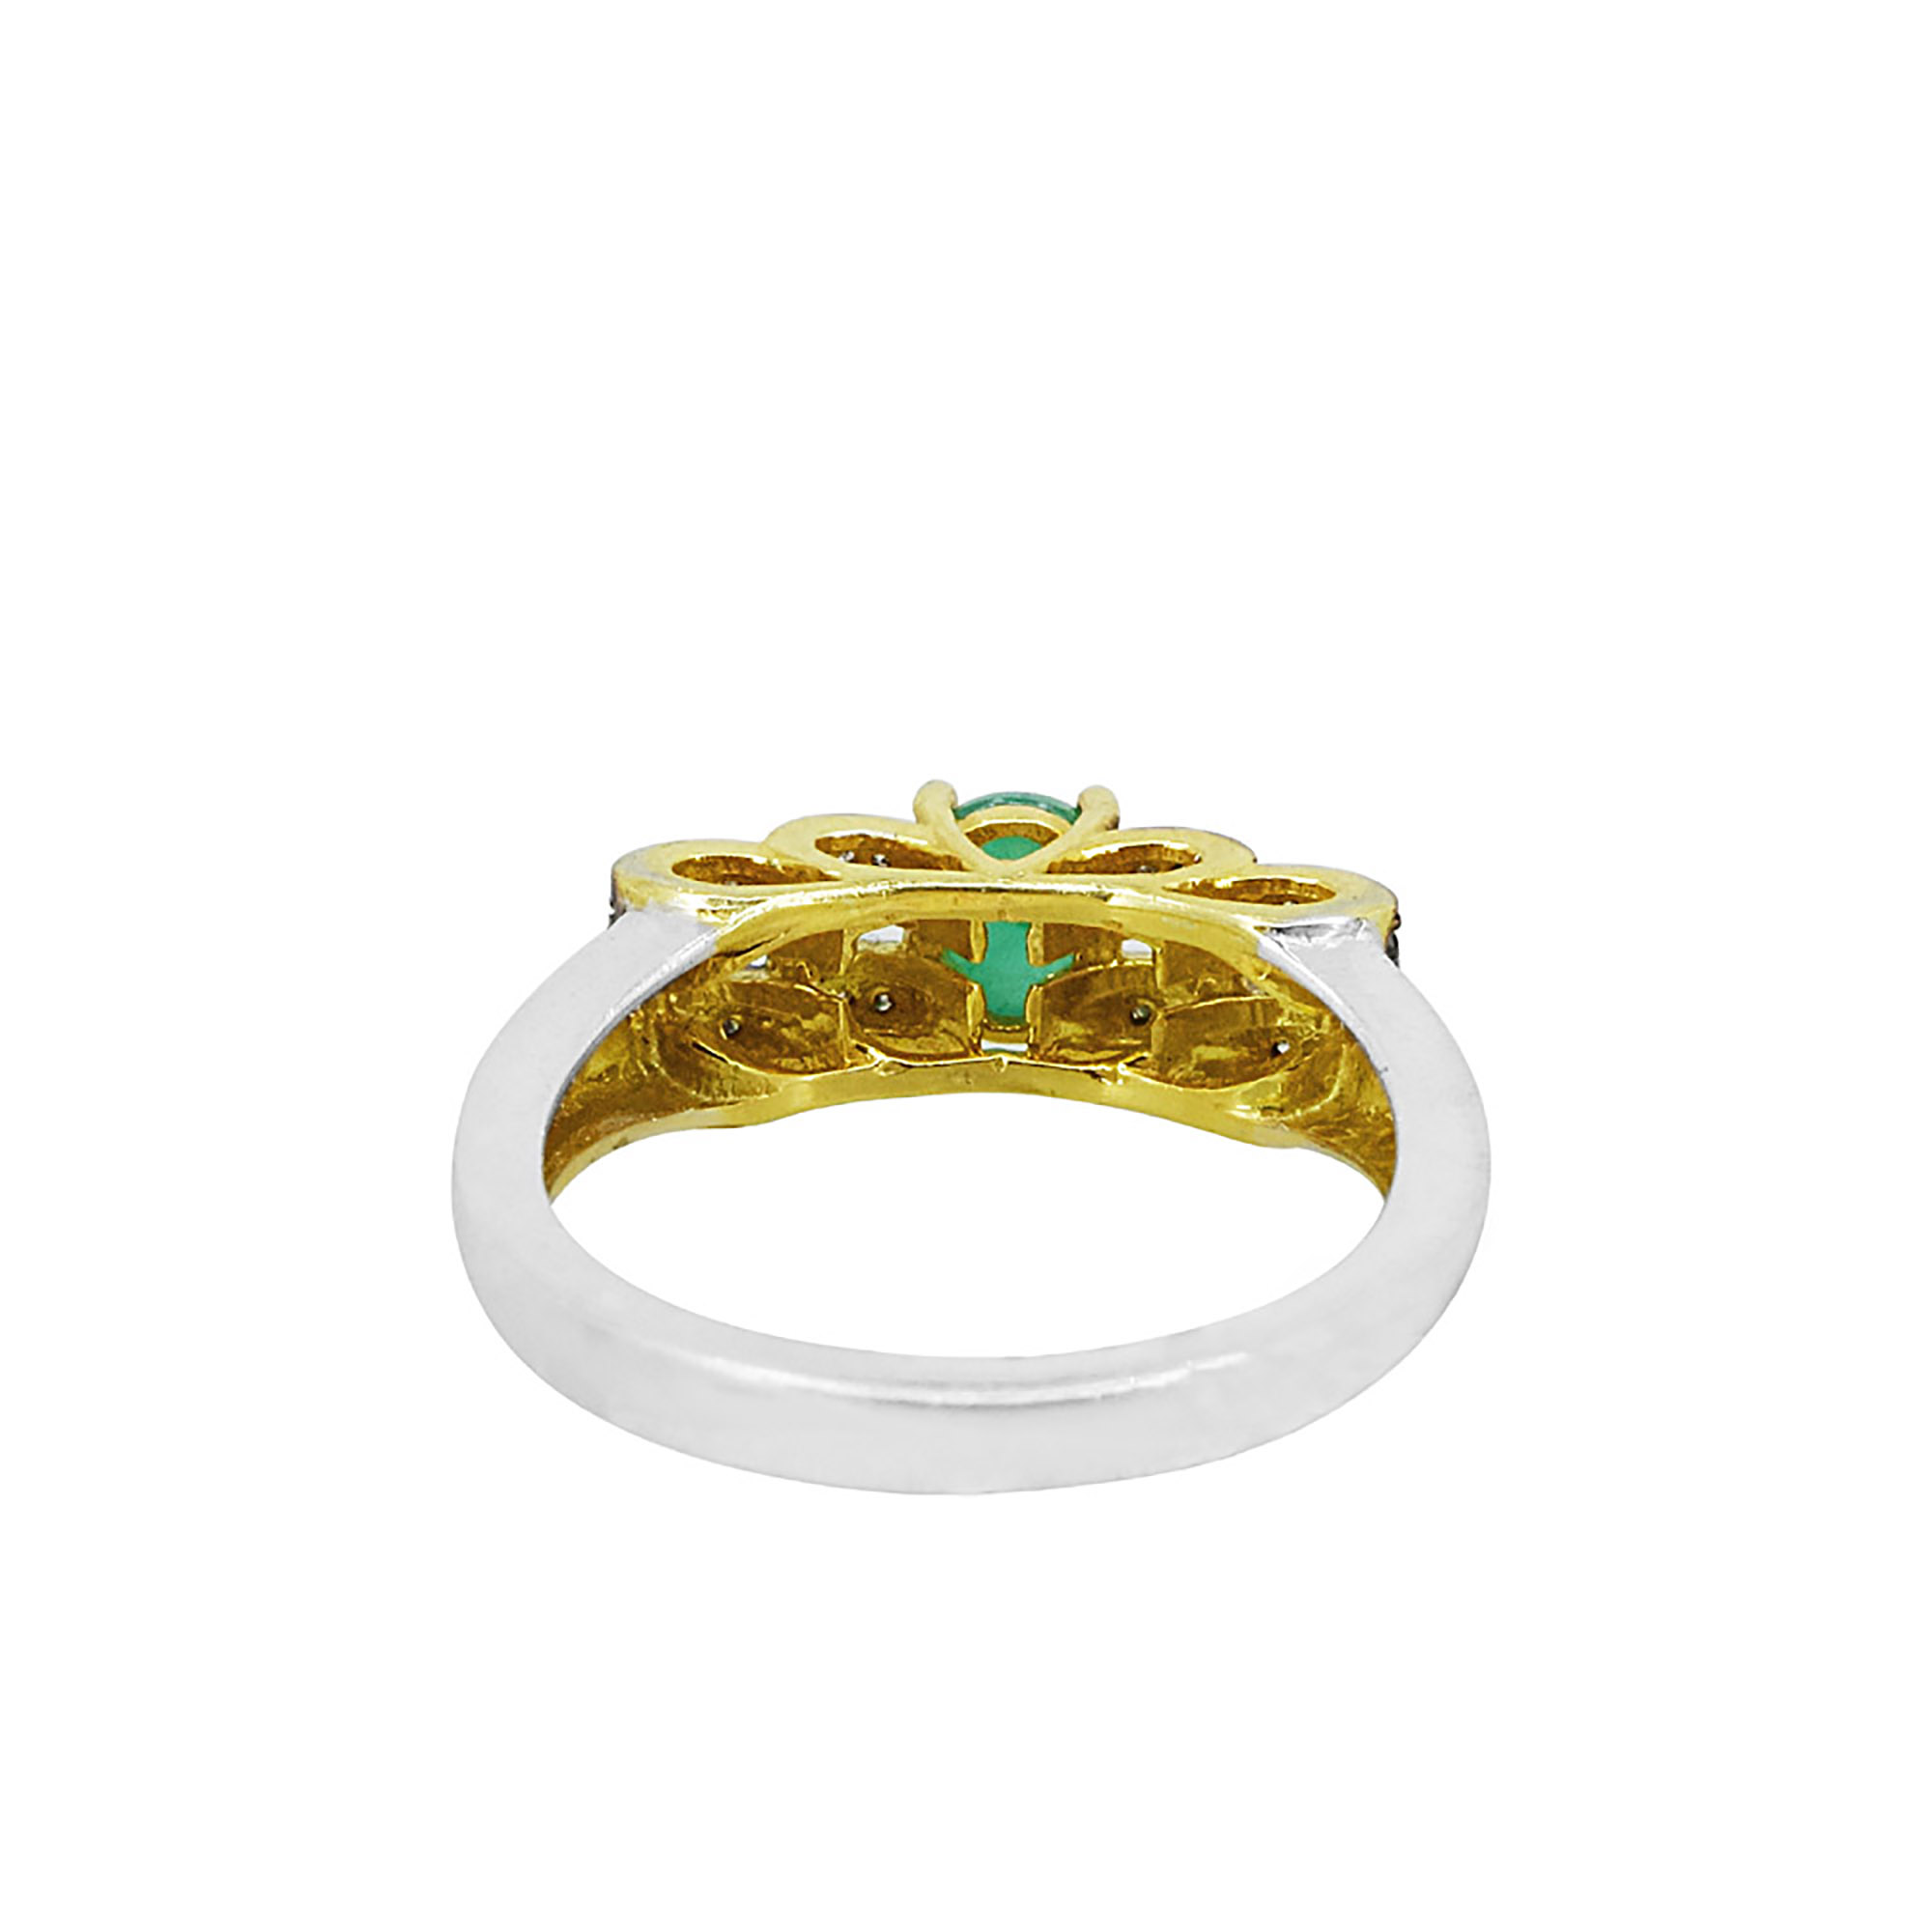 Genuine emerald & diamond engagement ring set in 14k gold 925 silver